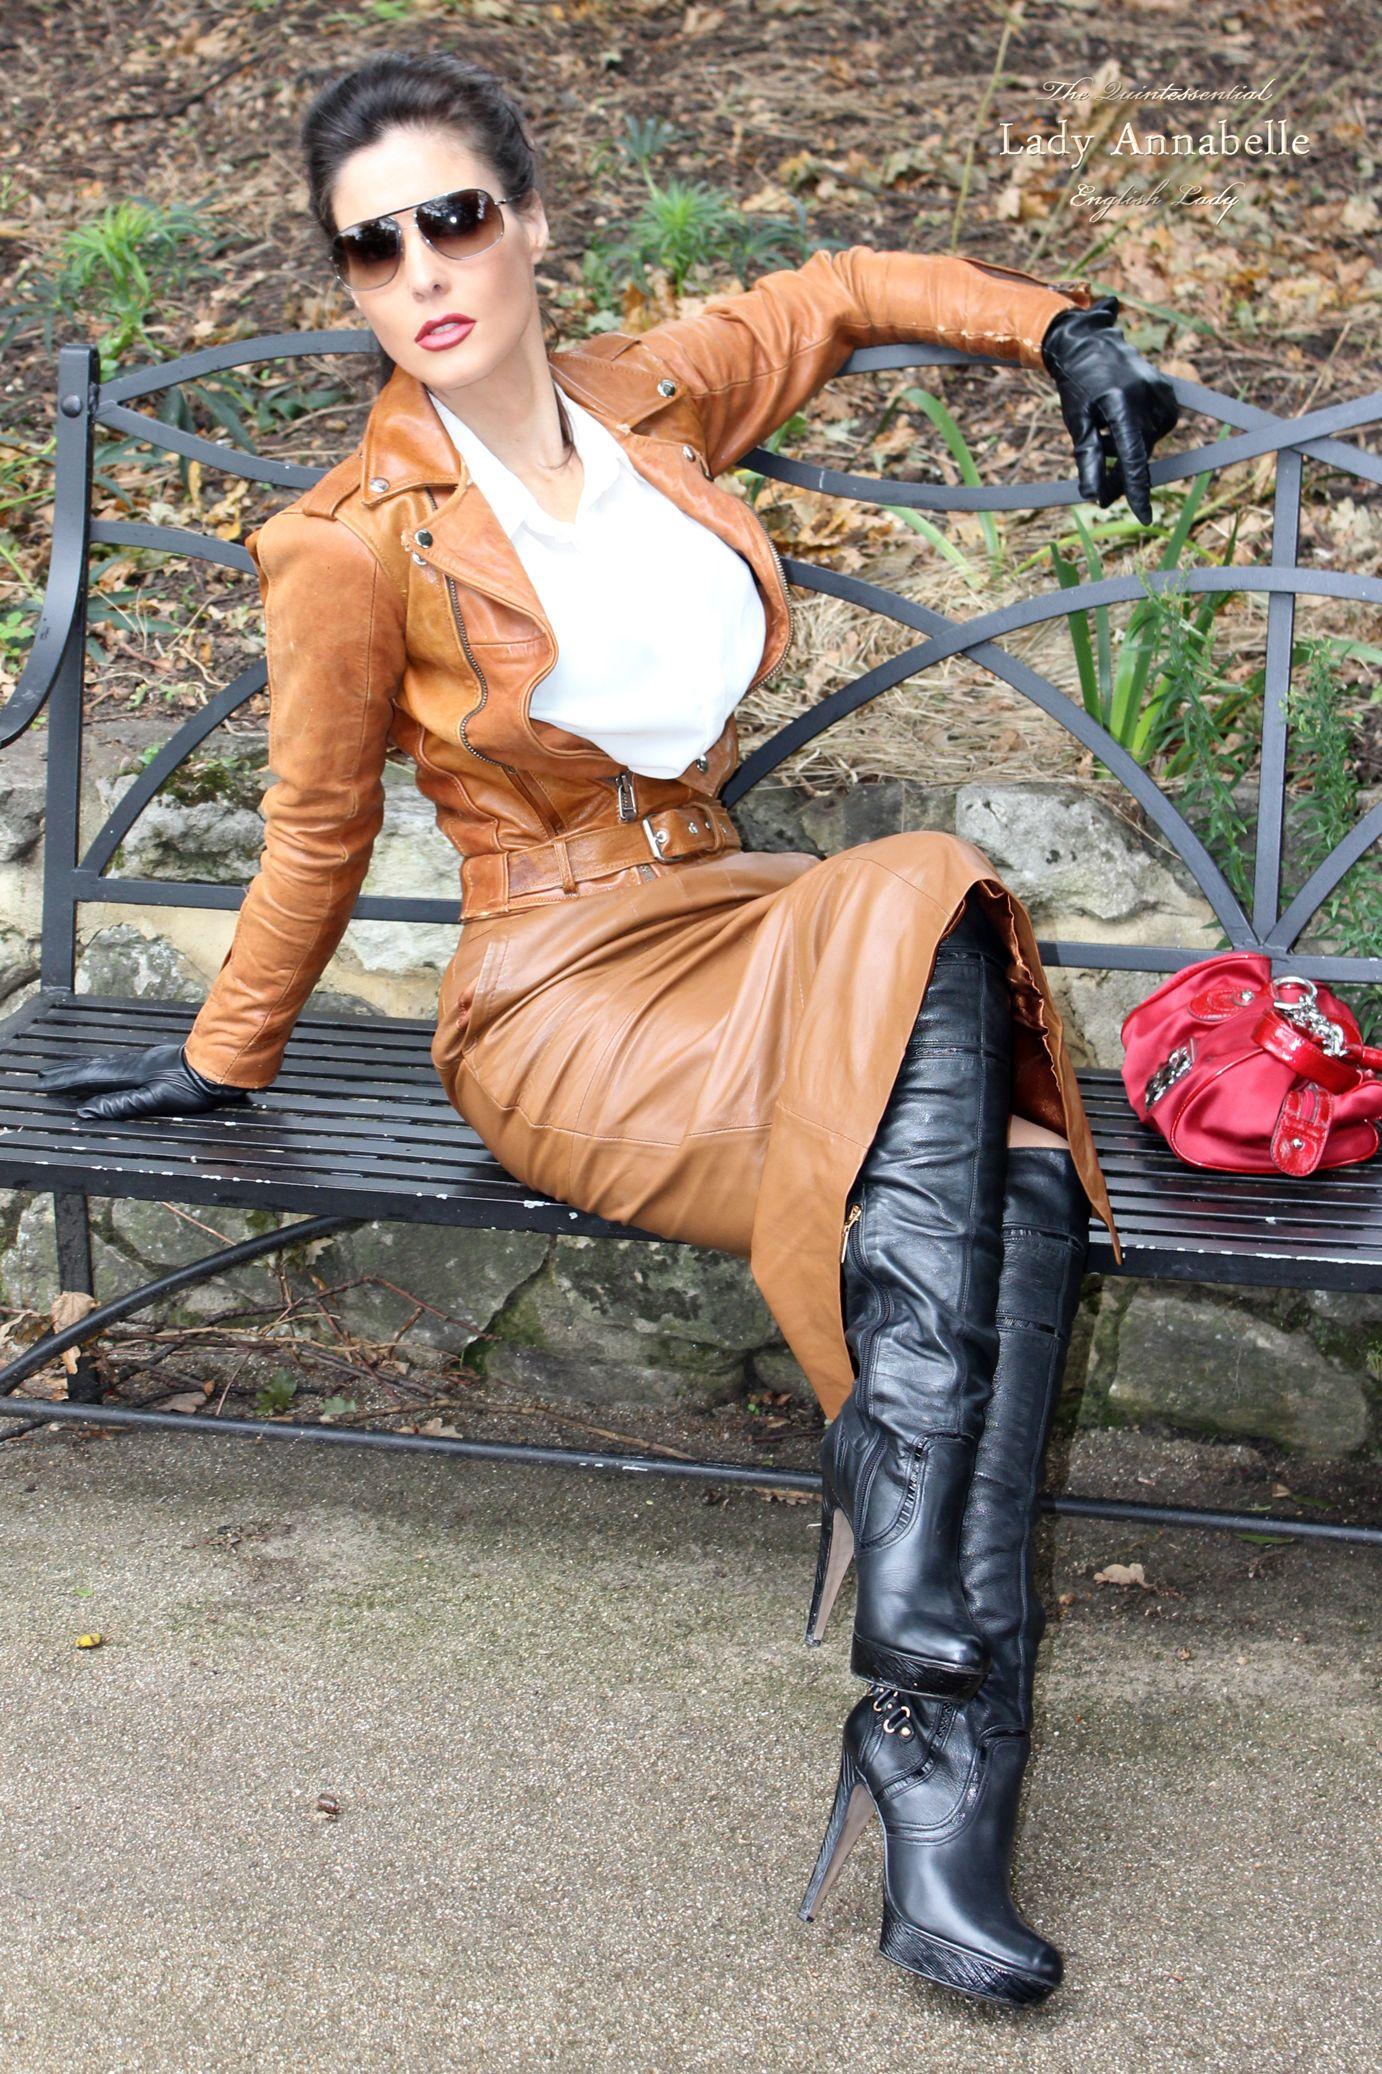 Lady Annabelle Adorned In Her Favourite Leather Outfit